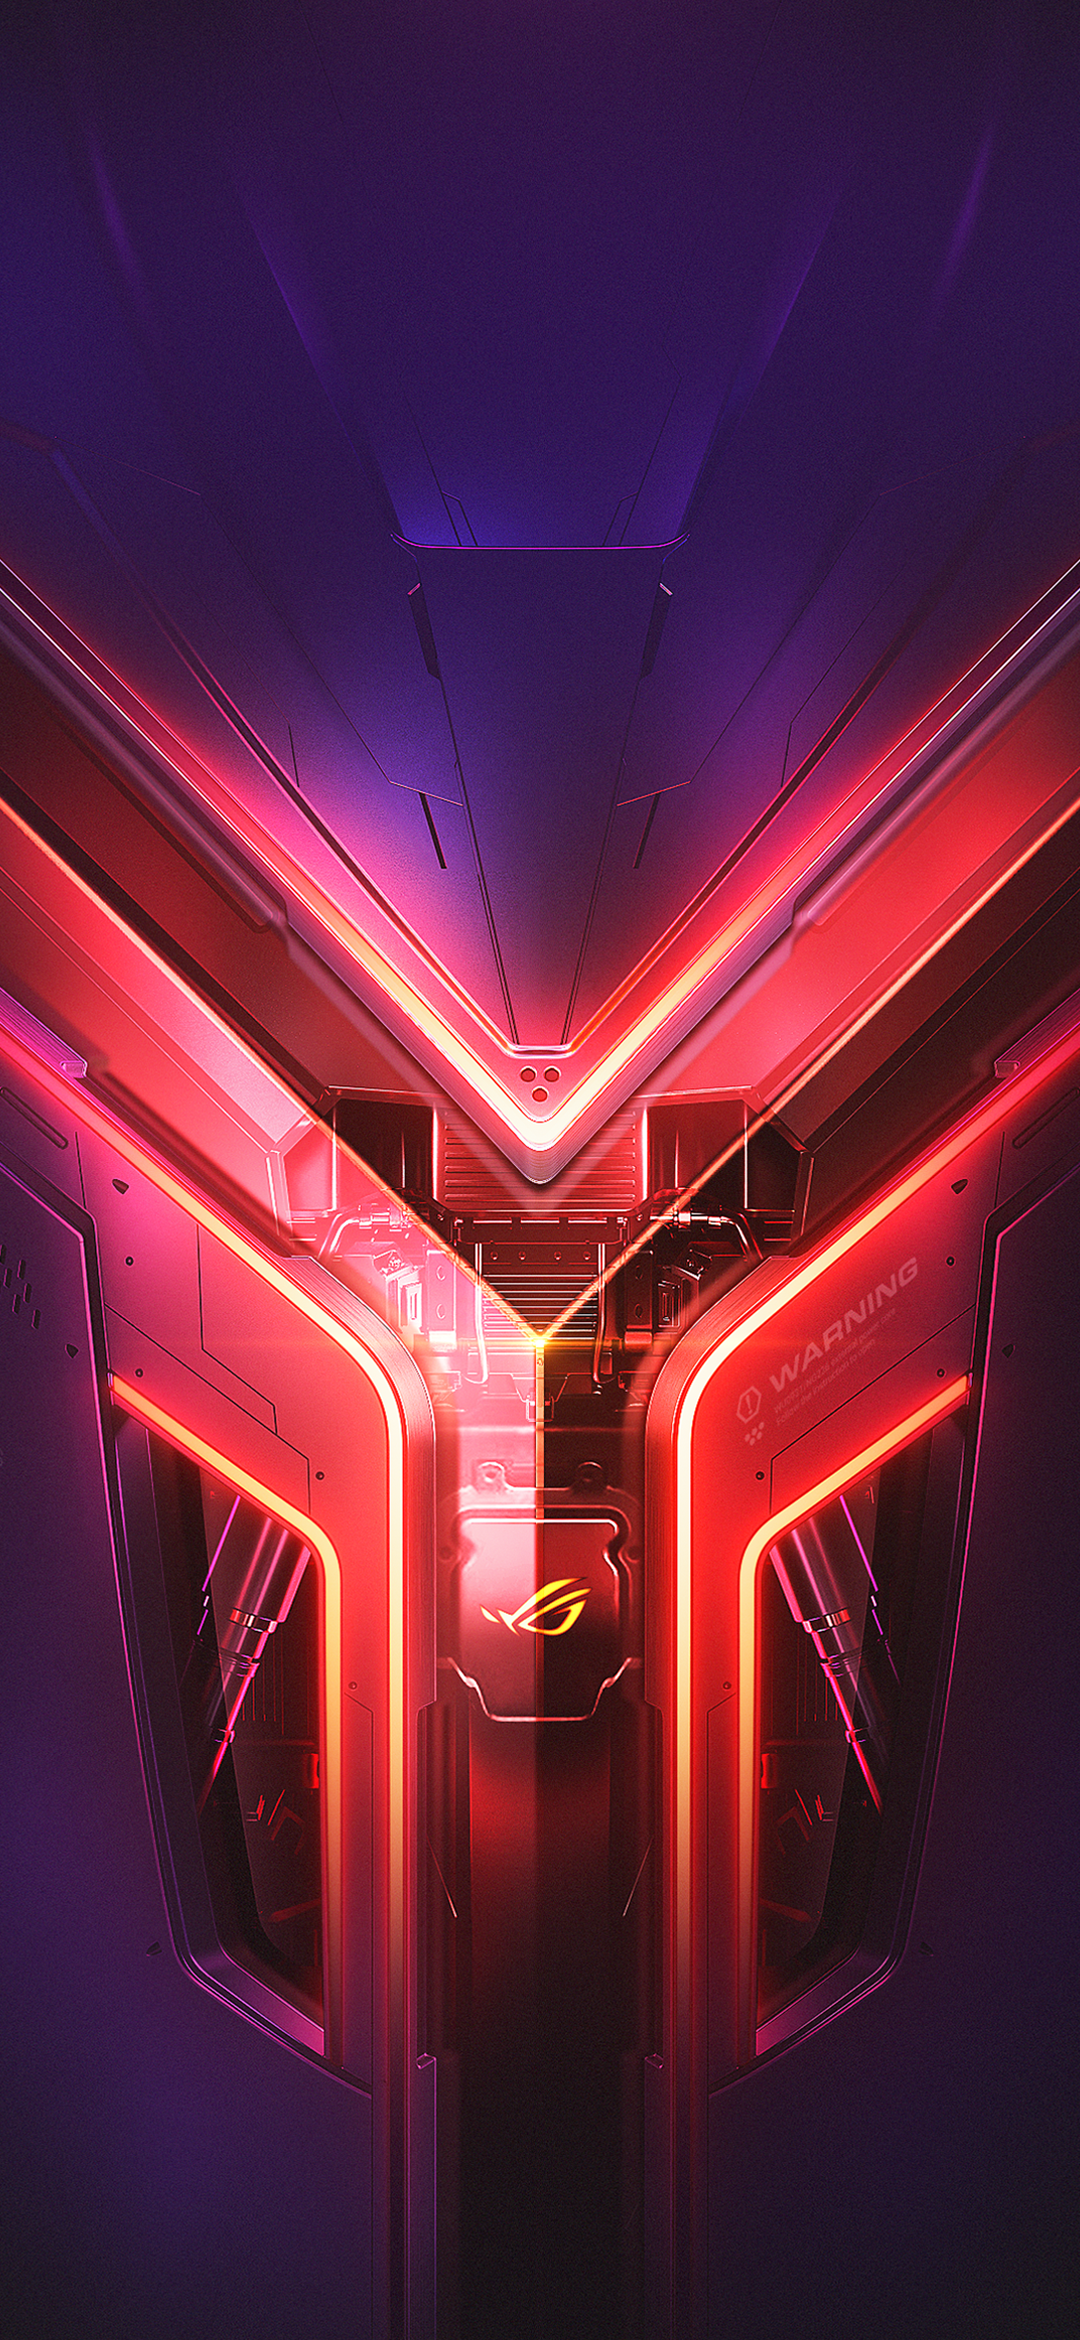 Descargar Asus Rog Phone 3 Stock Wallpapers Fhd In 2020 Hd Phone Wallpapers Stock Wallpaper Oneplus Wallpapers